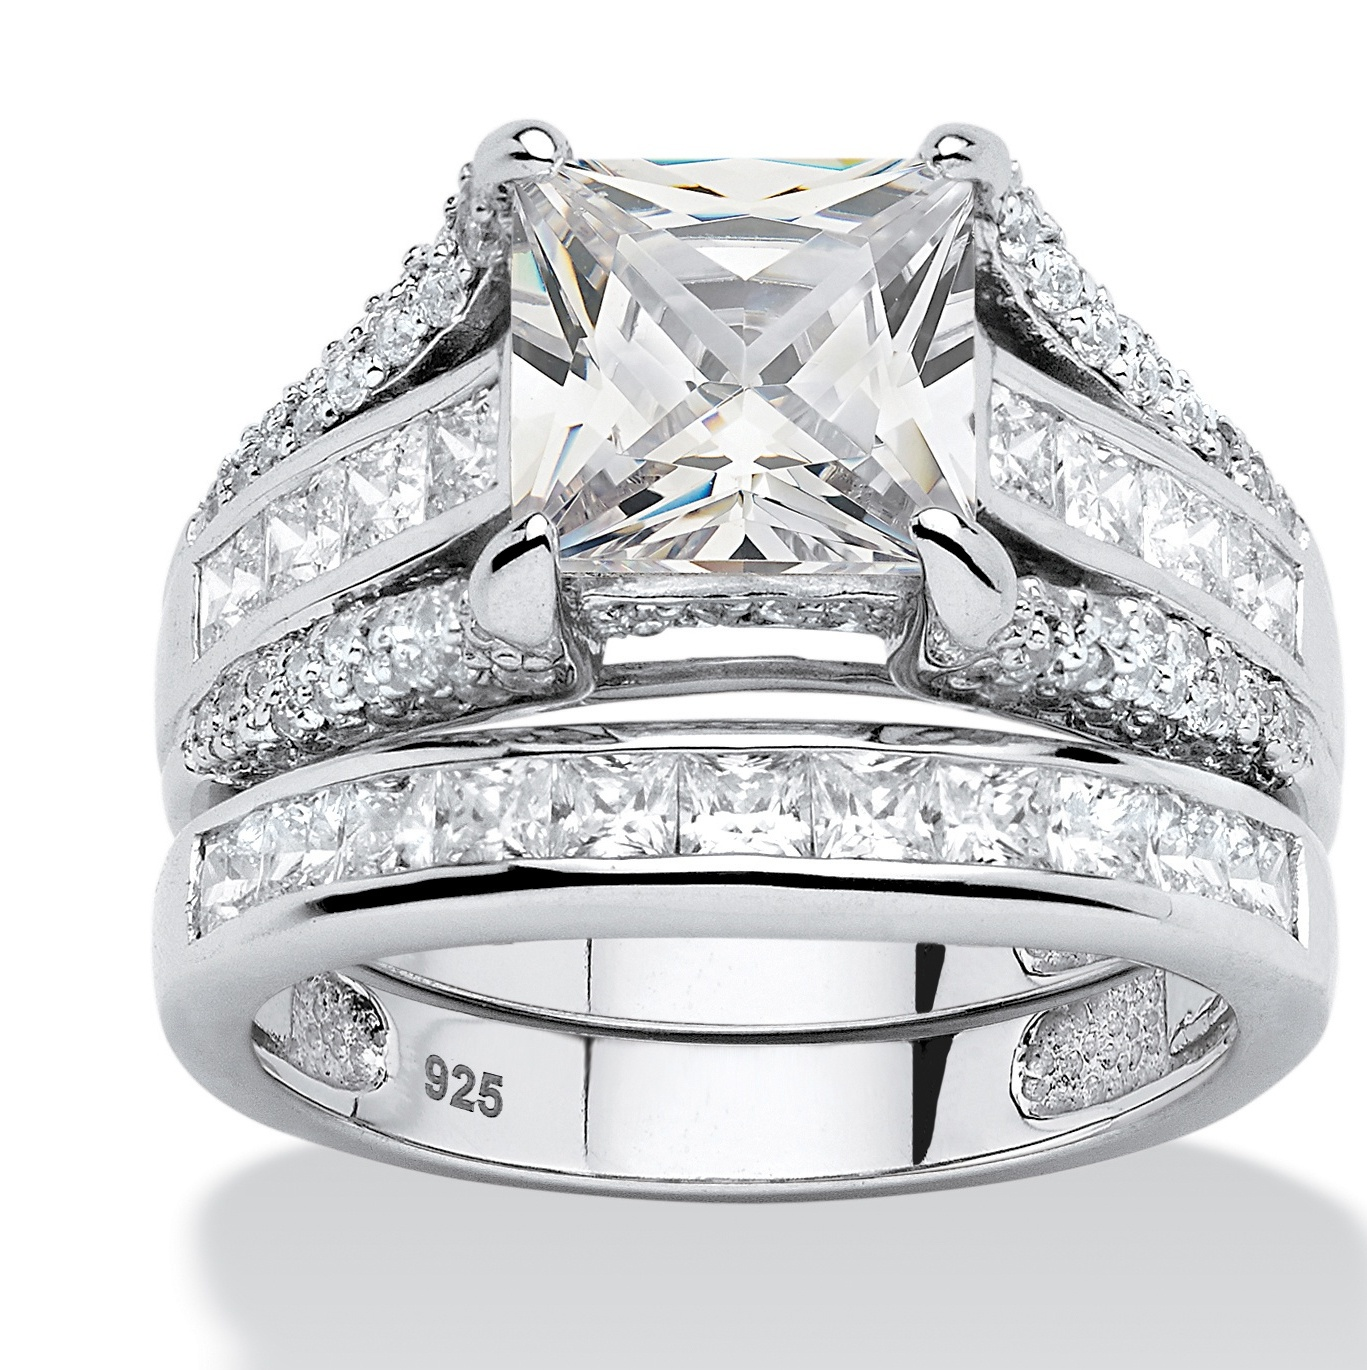 3.14 TCW Princess-Cut Cubic Zirconia 2-Piece Bridal Ring Set in Platinum over Sterling Silver by PalmBeach Jewelry